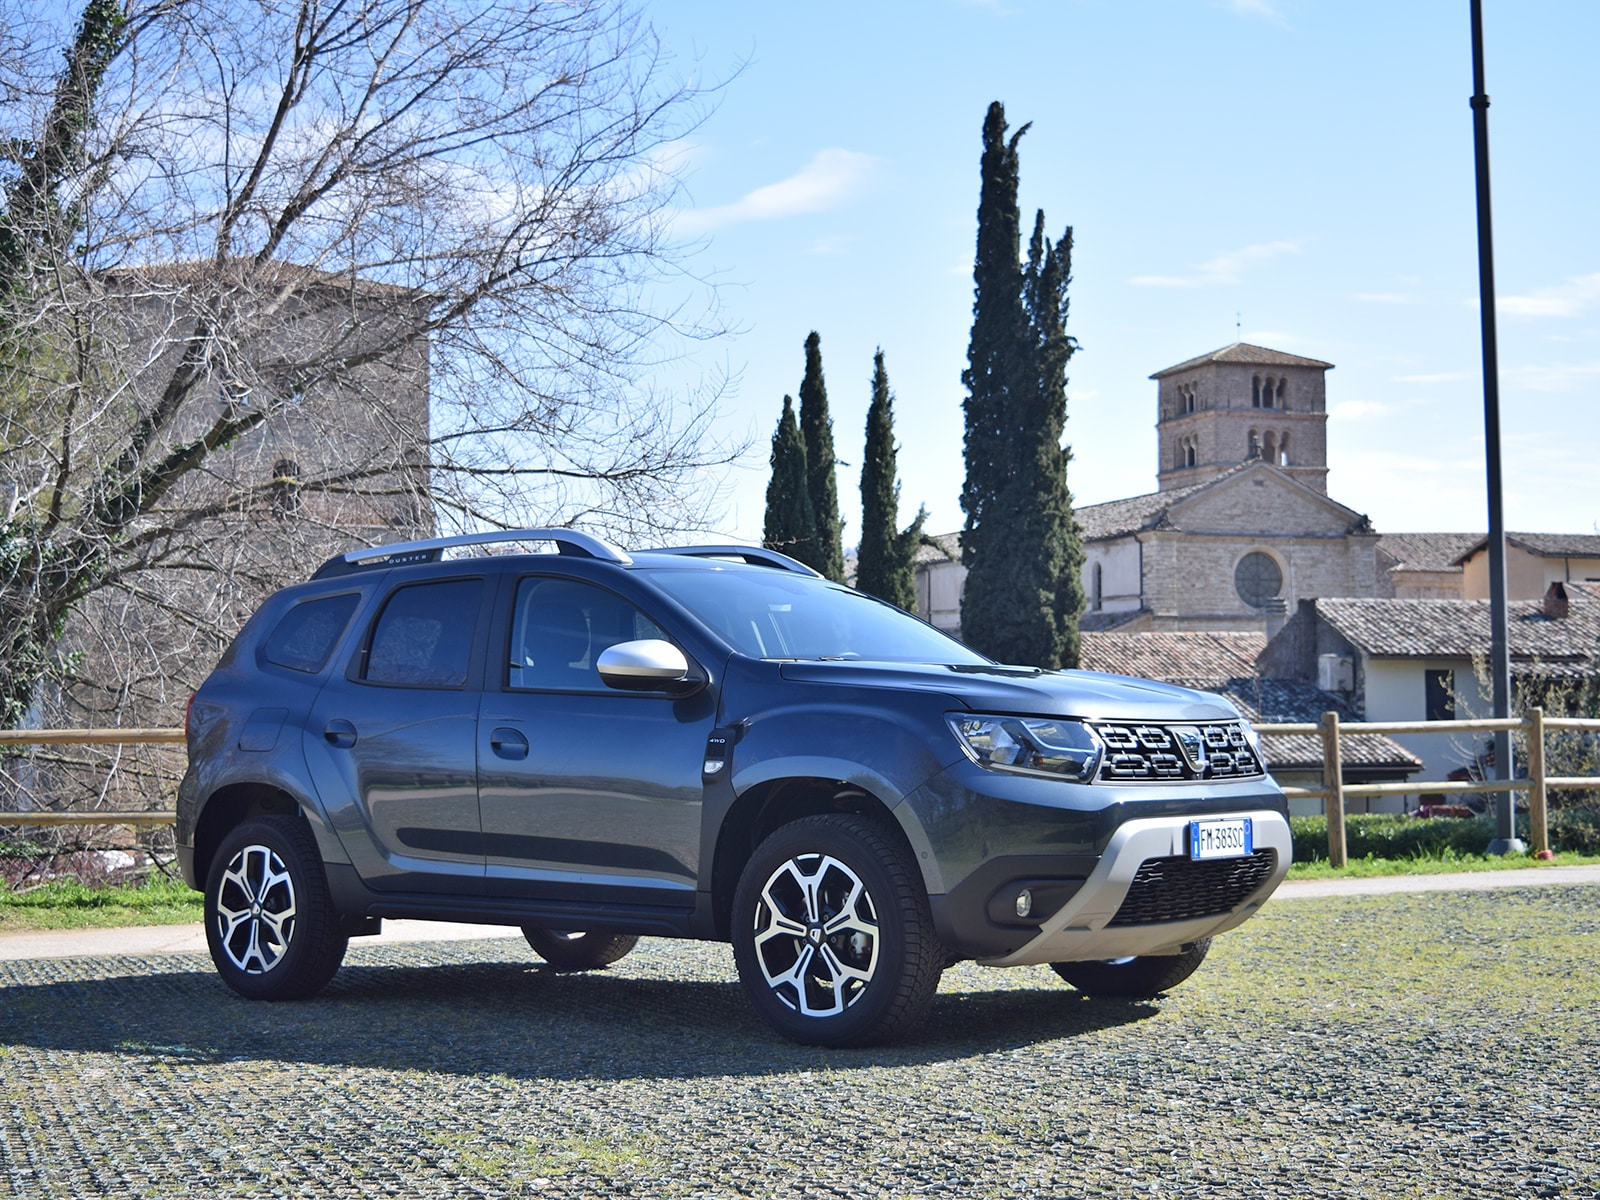 dacia duster 2018 1 5 dci 4x4 prestige il test prova su strada panoramauto. Black Bedroom Furniture Sets. Home Design Ideas